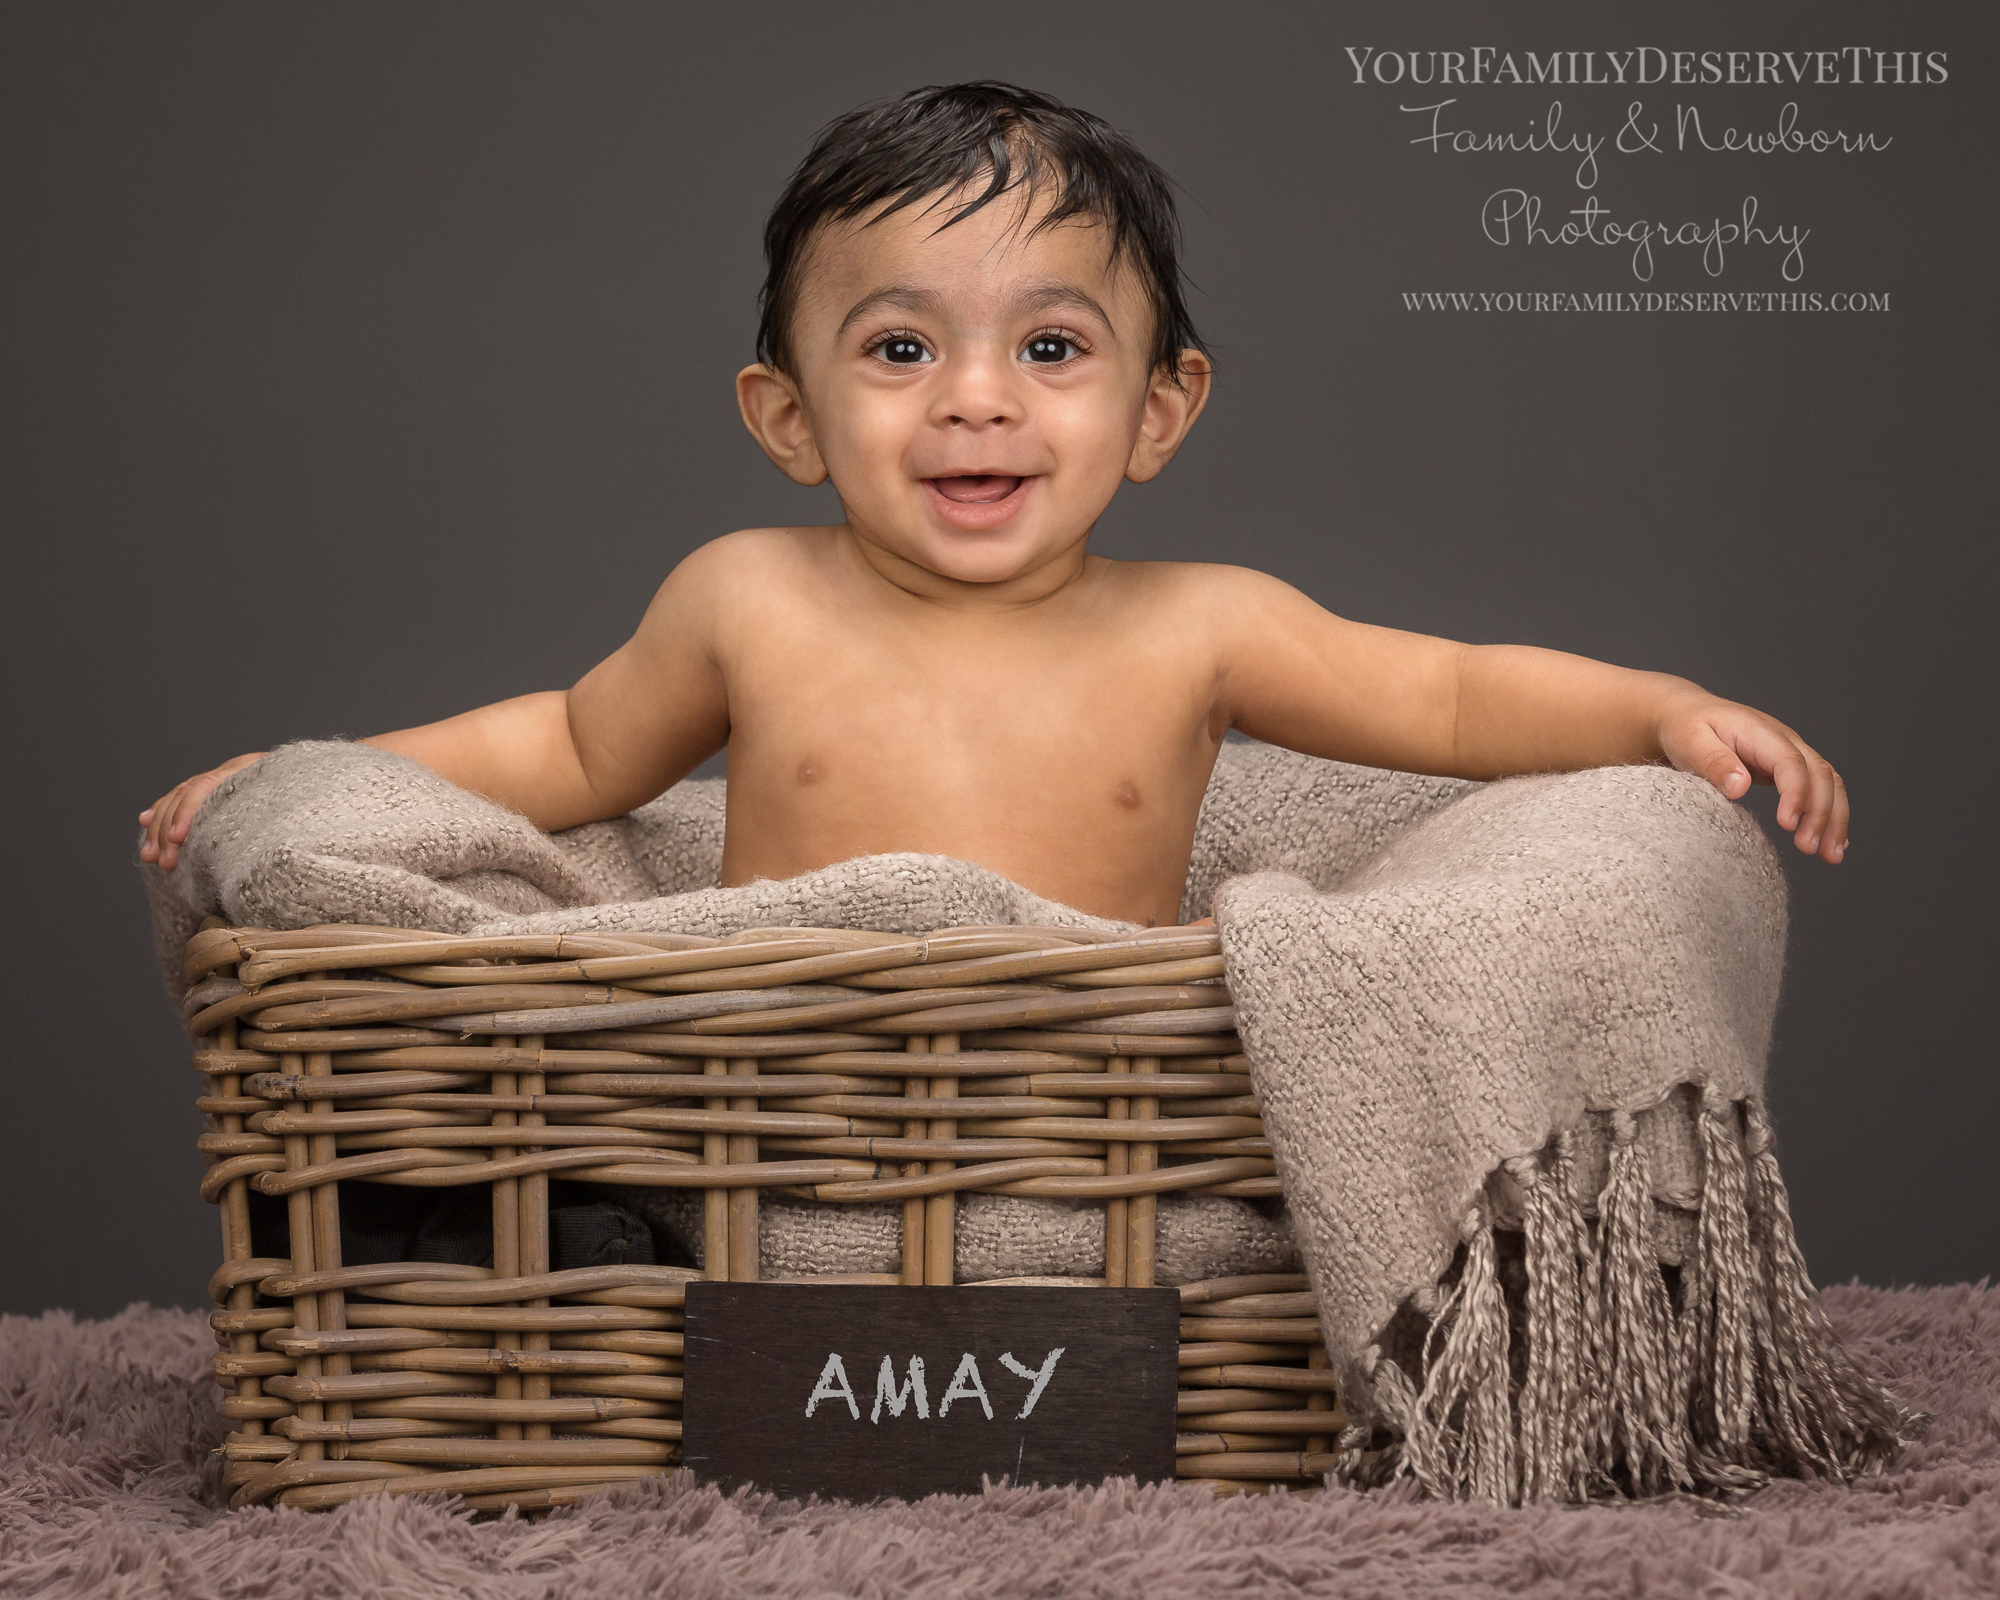 Gorgeous Amay sitting up by himself now, at his  6 month photo shoot , in the same basket as his newborn portraits.